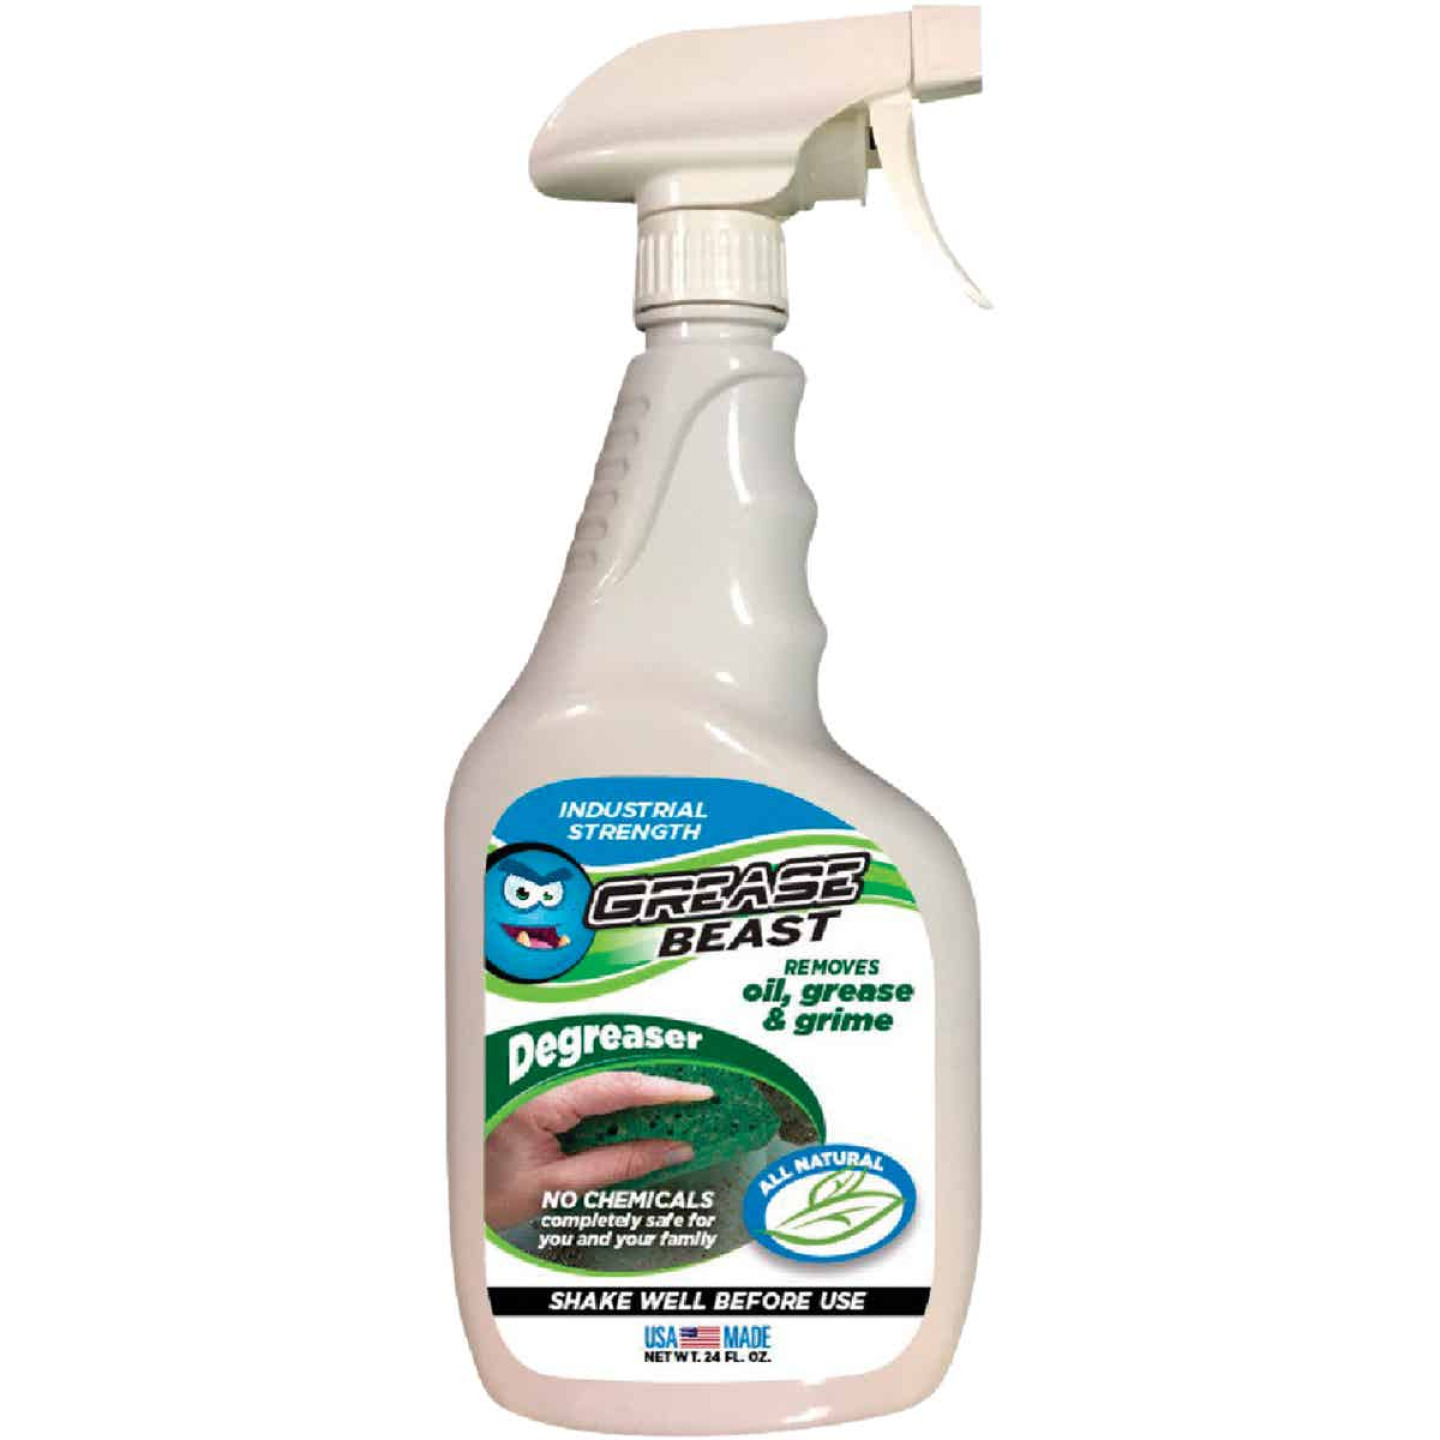 Grease Beast 24 Oz. All Natural Cleaner & Degreaser Image 1